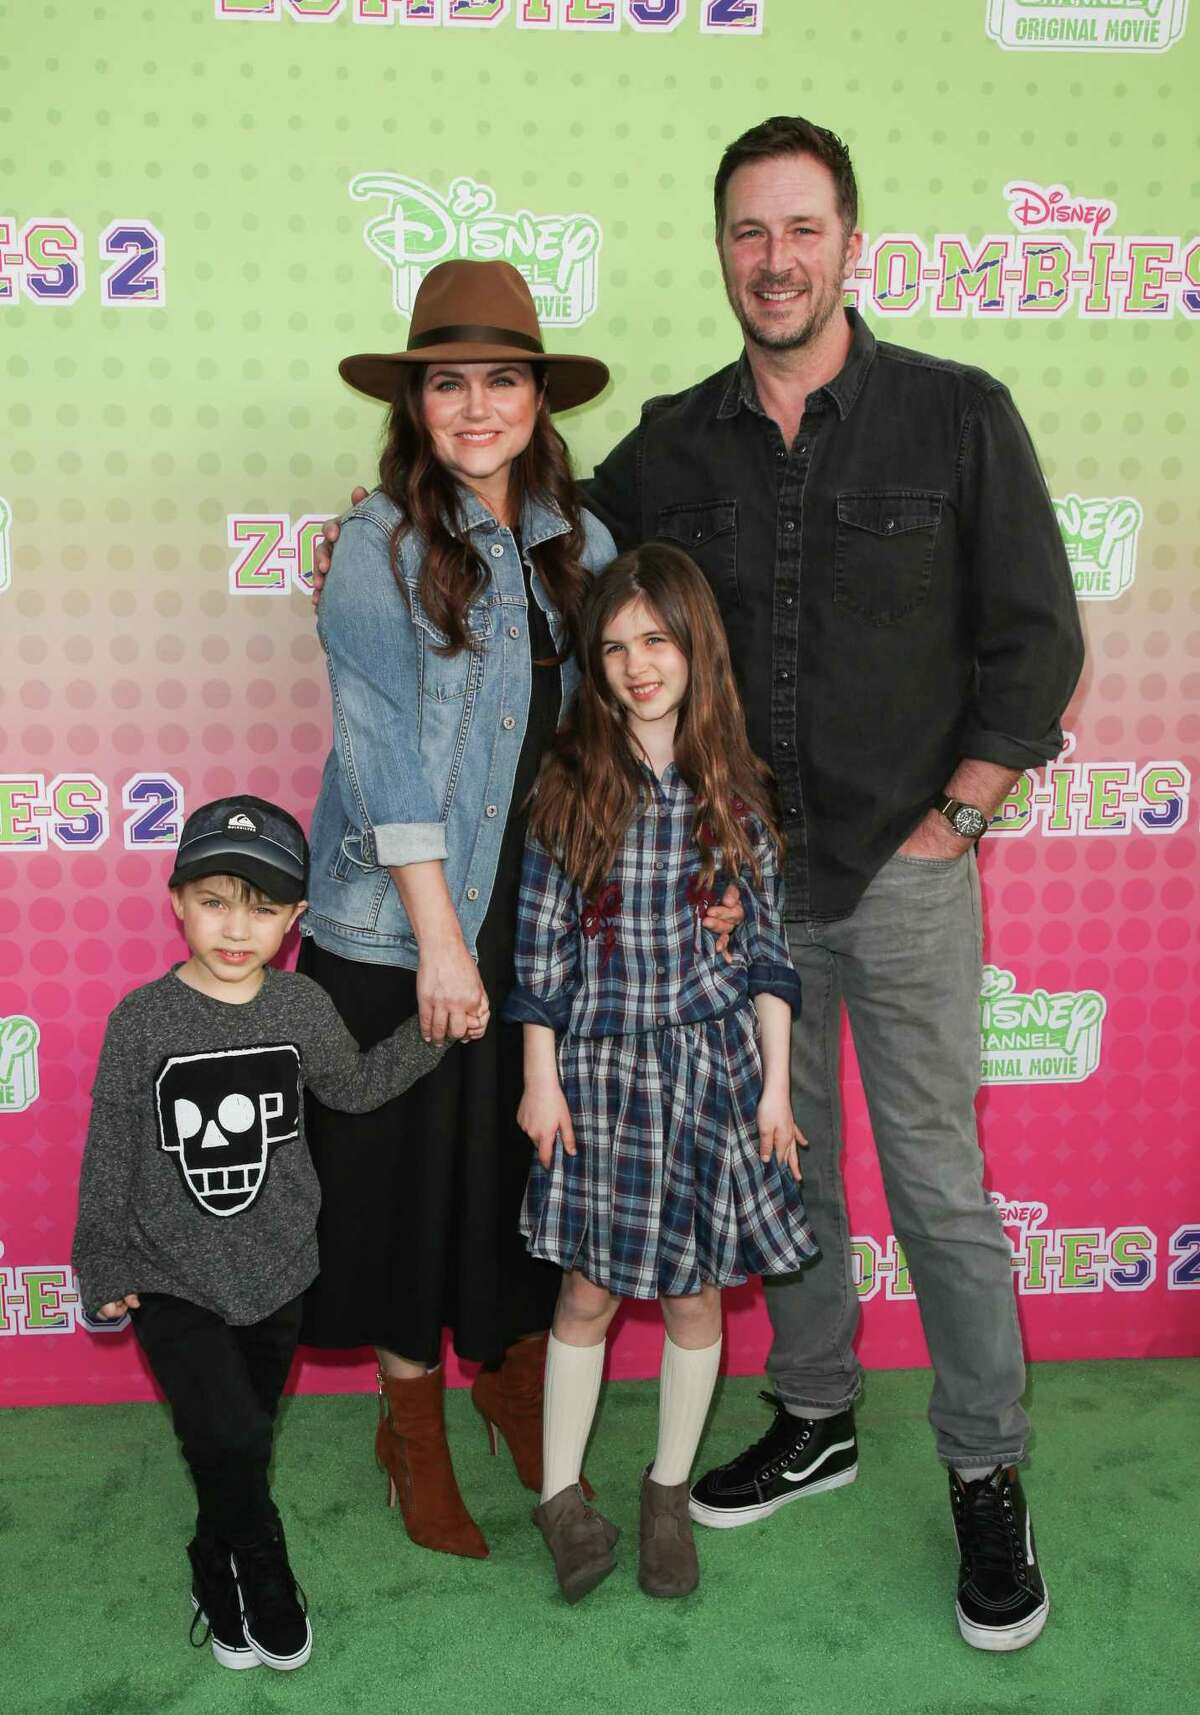 Tiffani Thiessen and husband Brady Smith with their kids attend the screening of the Disney Channel original movie